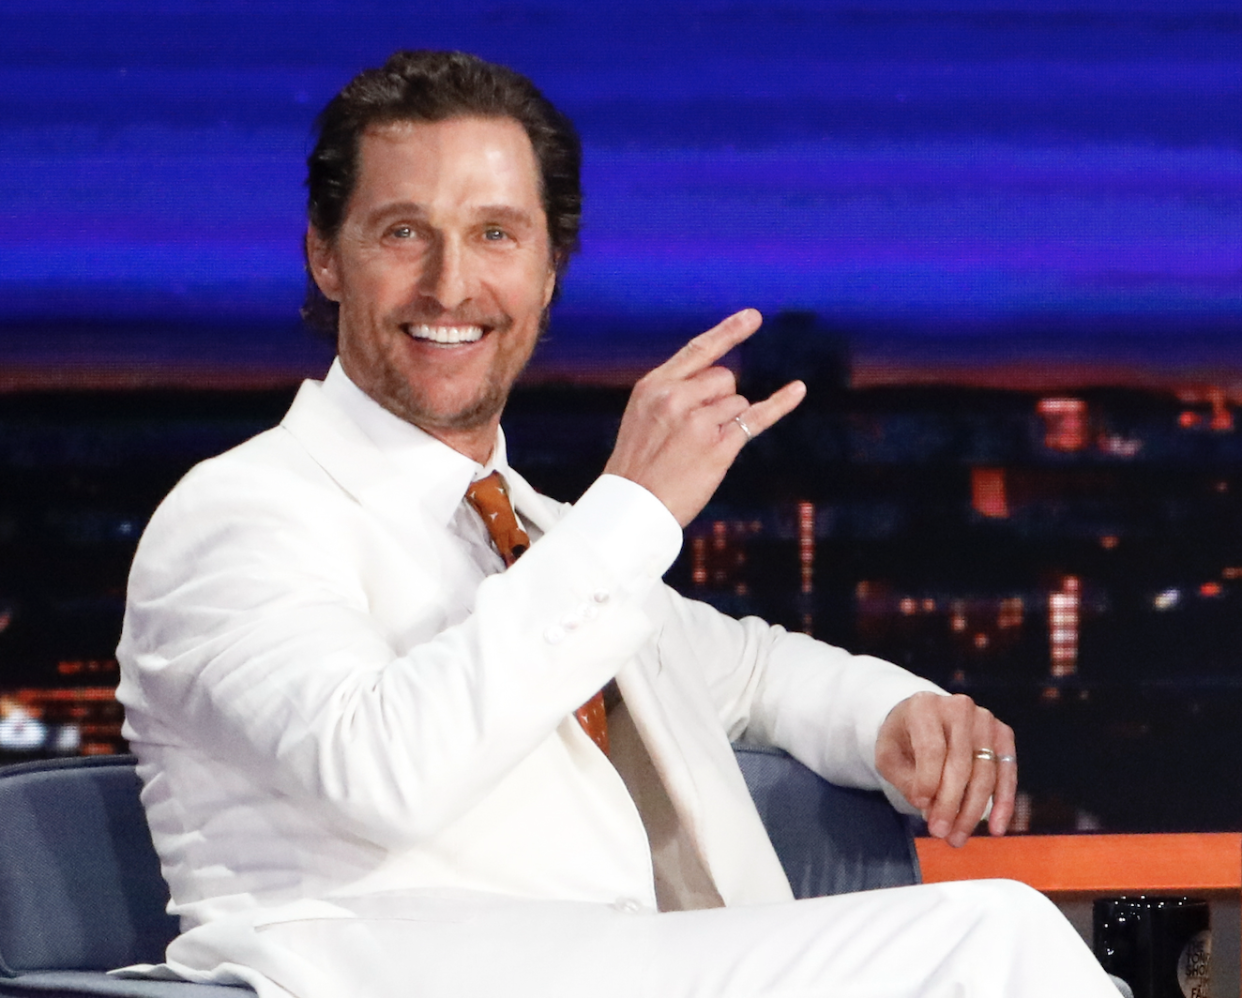 Matthew McConaughey is still considering a run for governor of Texas. (Photo: Getty Images)